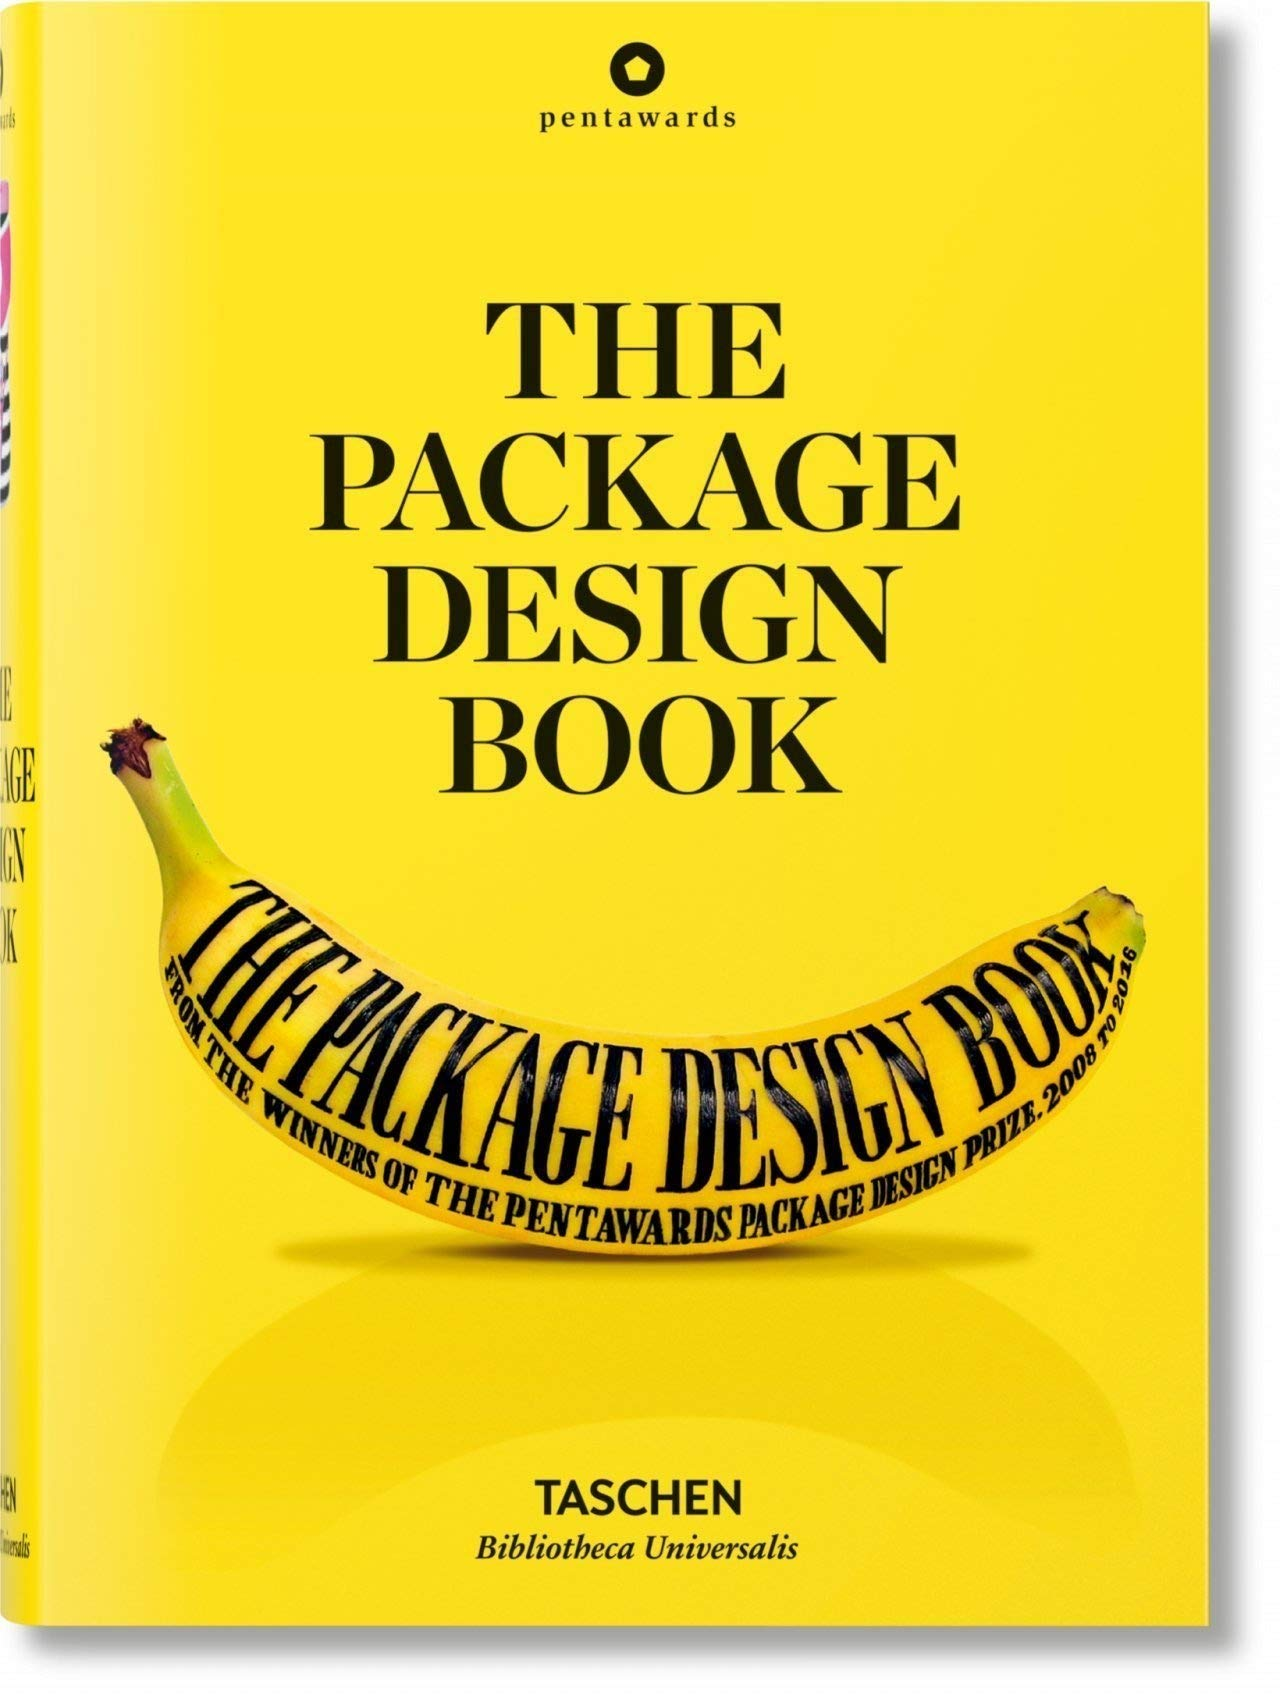 The Package Design Book (Bibliotheca Universalis